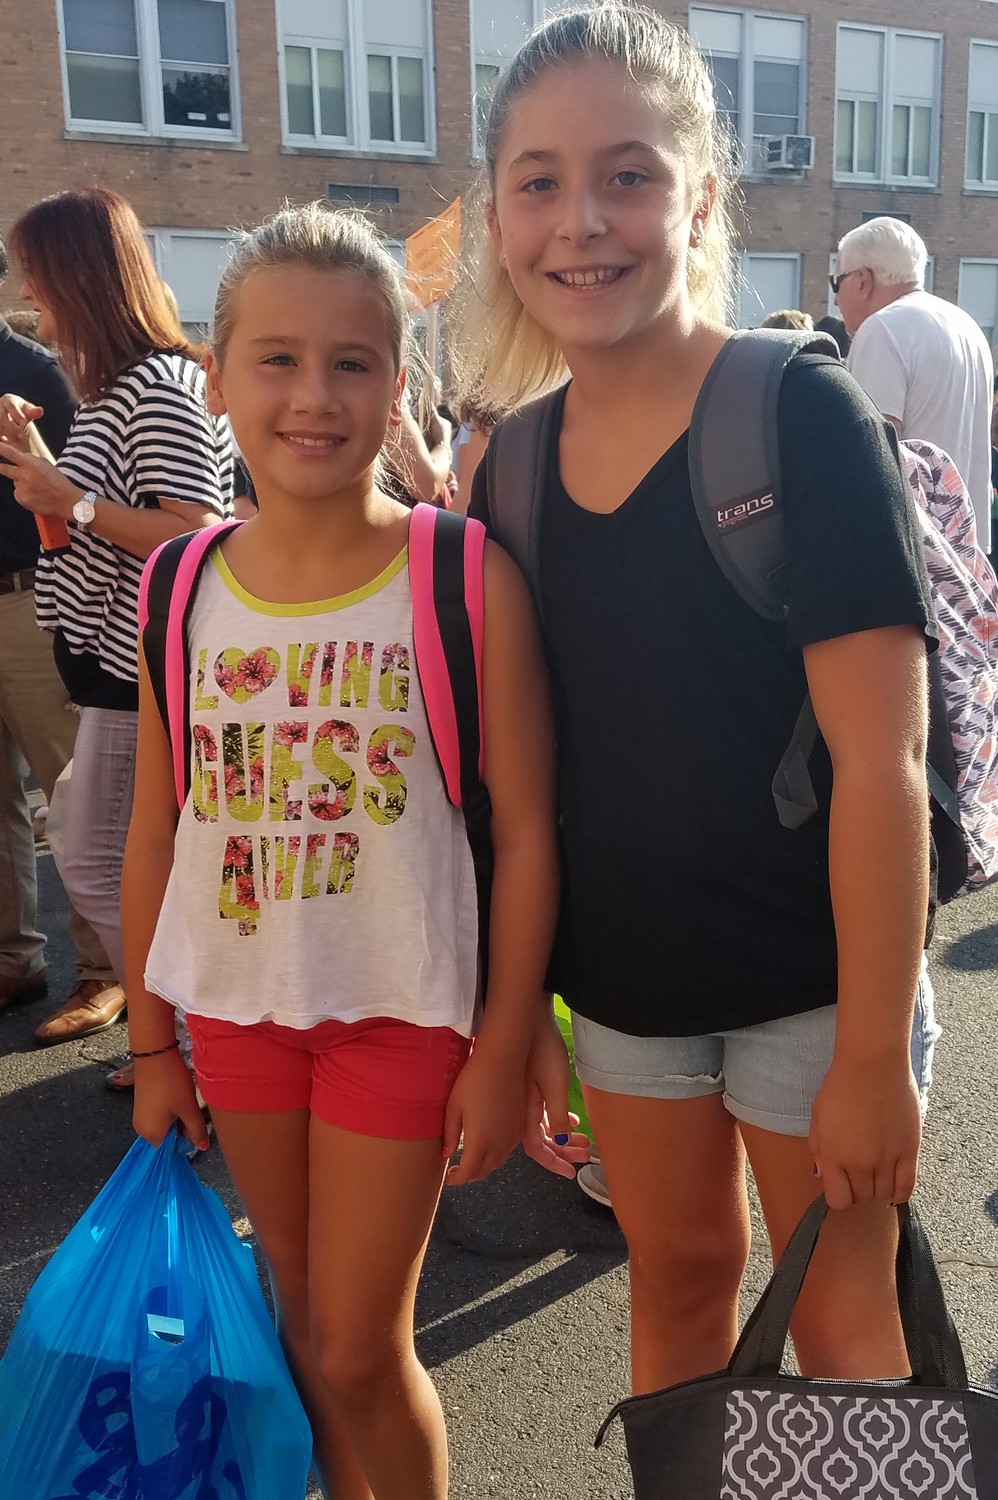 Santina D'Amato and Daniella Boccia, both 10, were ready to start their first day of fifth grade together.